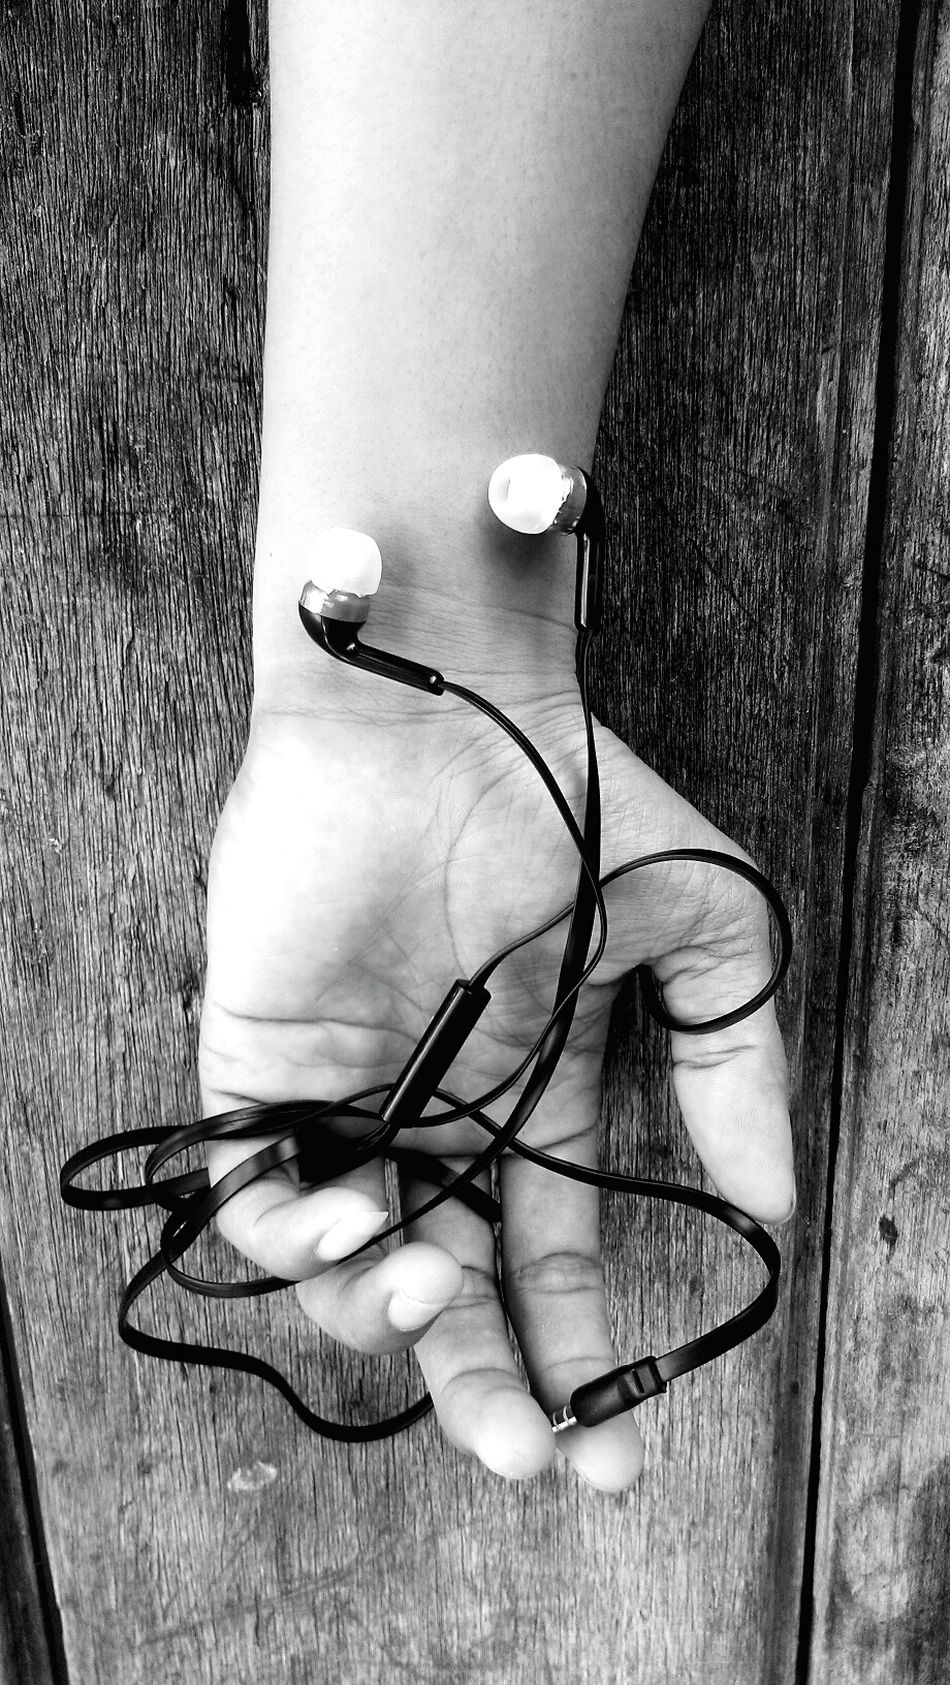 Earphones My Hand  Blackandwhite Photography Black & White Close-up Everyday Emotion Sound Of Silence Sound Of Life TakeoverMusic The Week On Eyem Left HTC_photography EyeEmNewHere Urbanphotography Welcome To Black